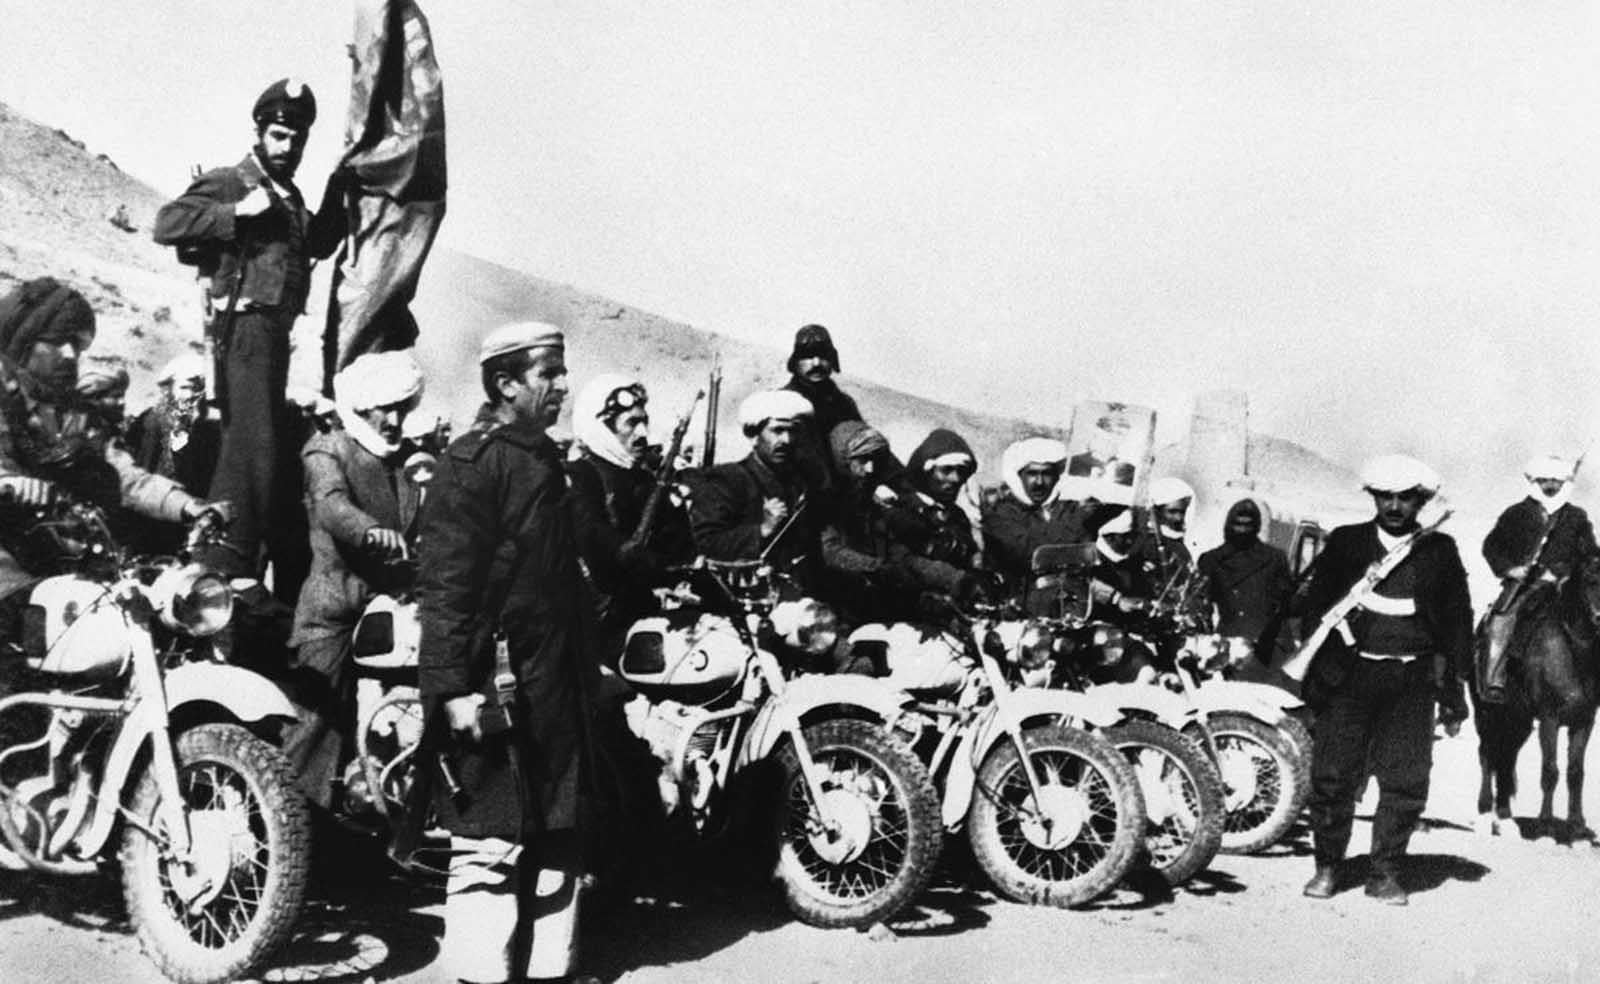 Afghan guerrillas, armed and equipped with motorcycles prepare for action with Soviet and government forces, in the mountainous western region of Afghanistan on January 14, 1980. The guerrillas were able to slip in and out of neighboring Iran, where they re-supplied from Muslims who sympathized with their struggle.